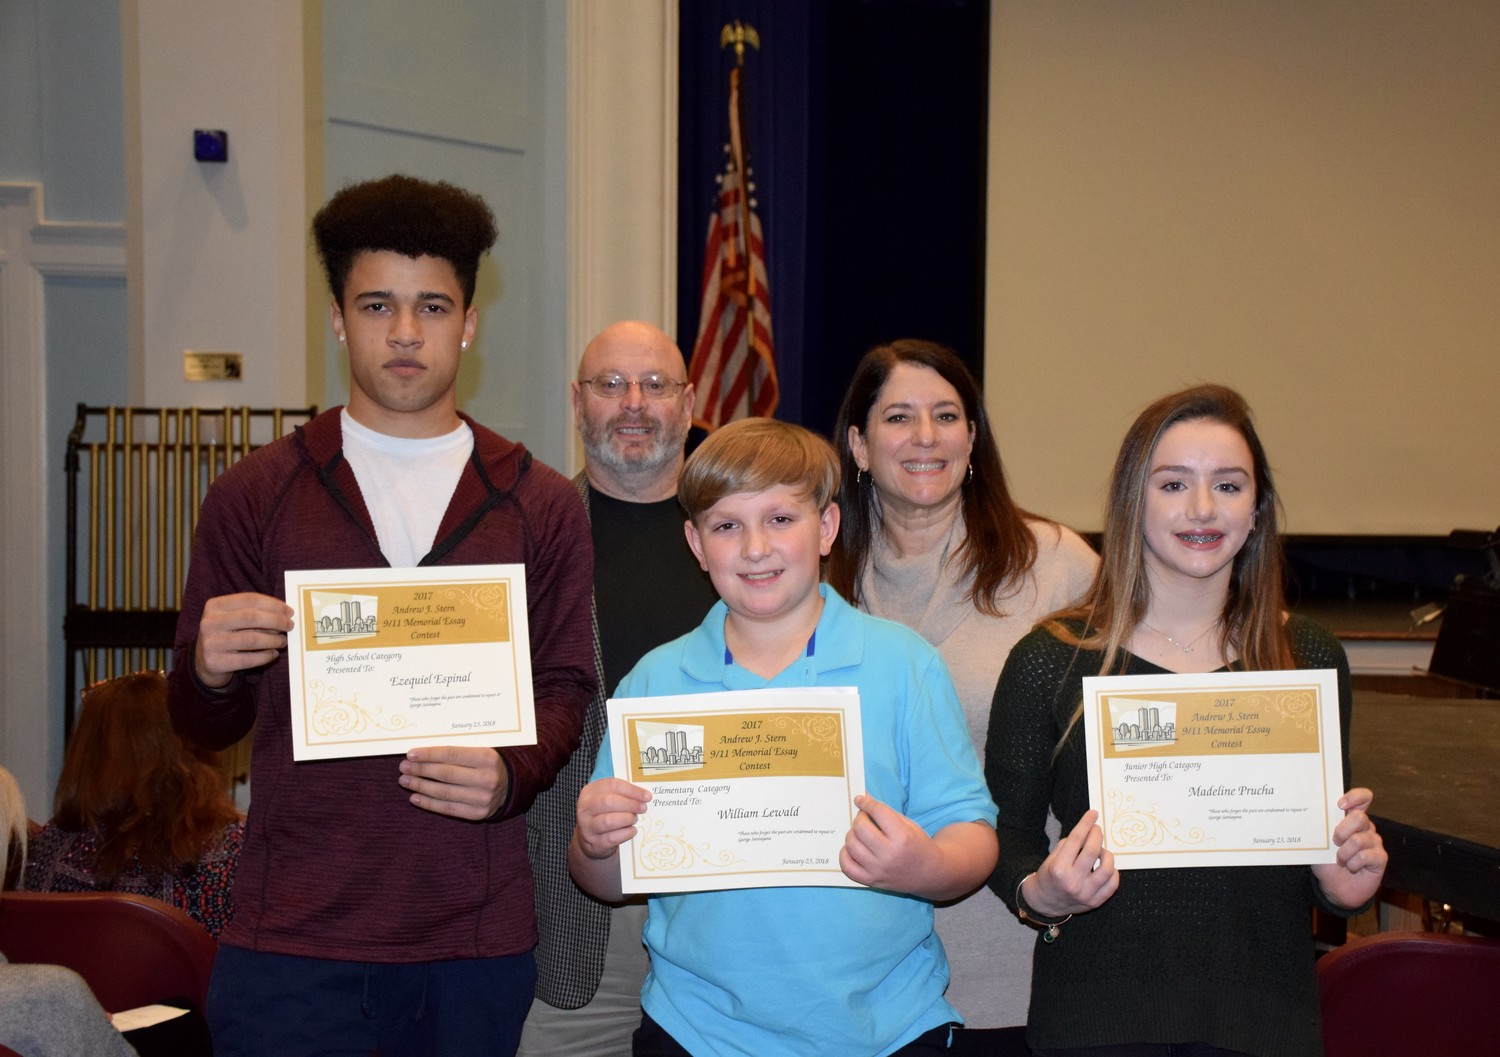 East Rockaway School District students Ezequiel Espinal, left, William Lewald and Madeleine Prucha were awarded for their entries into the annual Andrew Stern Memorial Essay Contest. Above, the students with Stern's family members, Michael Stern and Lisa Burch.